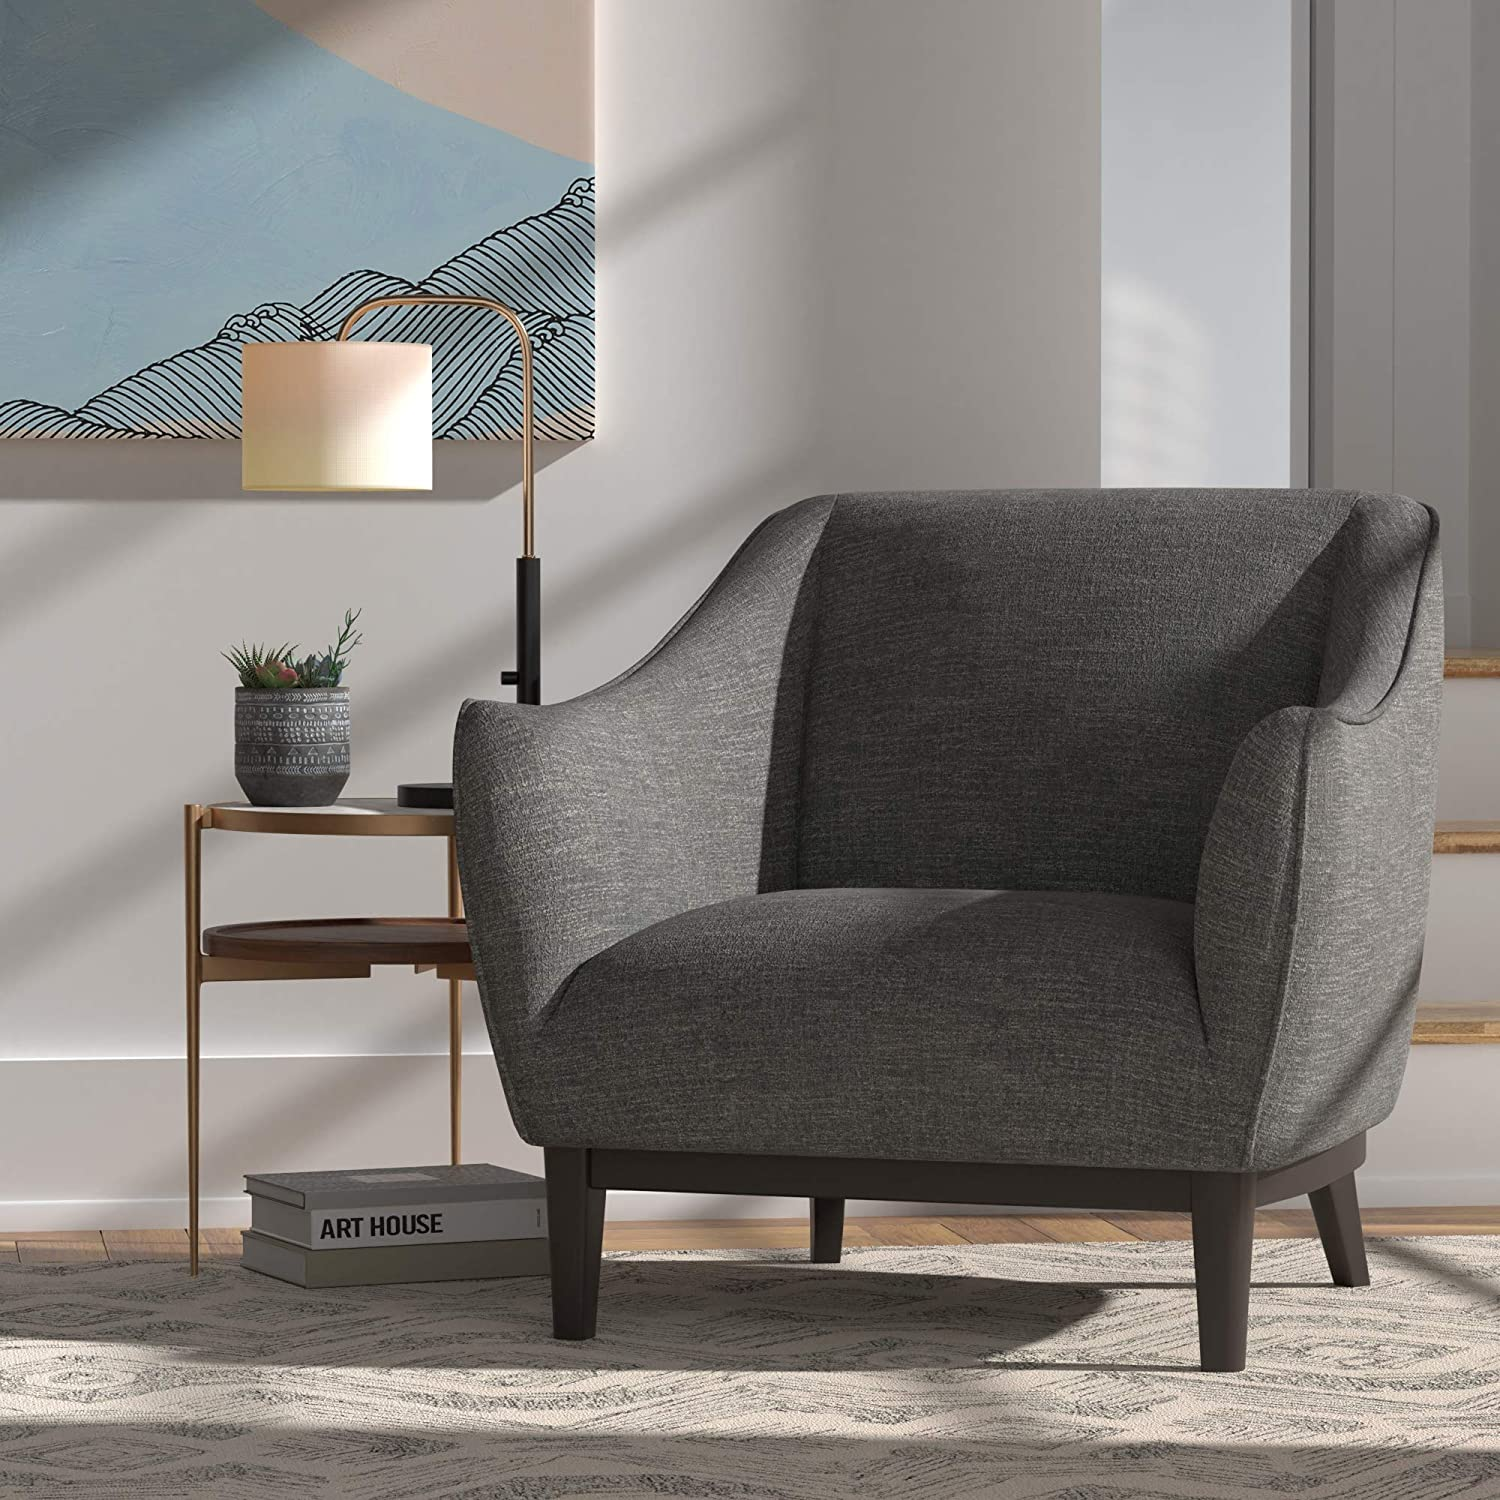 10. Rivet Bayard Contemporary Accent Chair – Best Supportive